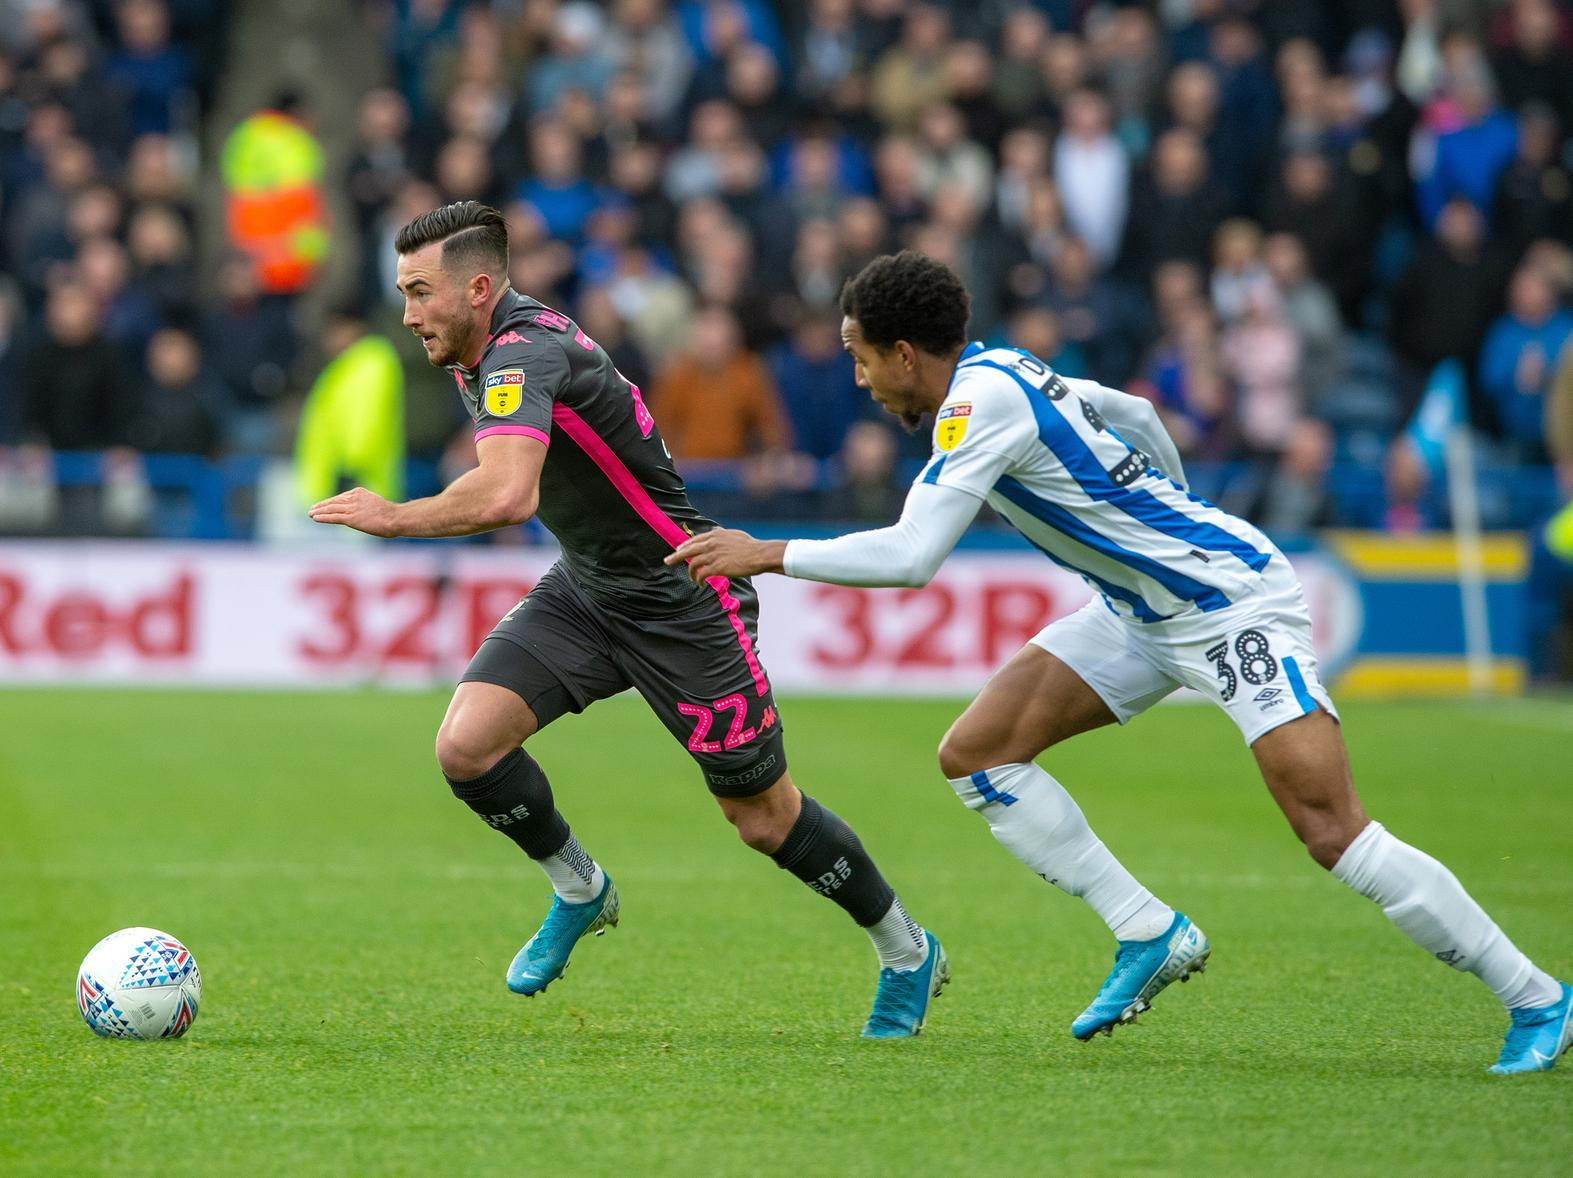 'What Bielsa and his staff have done is amazing!' - Leeds United fans react to win over Huddersfield Town